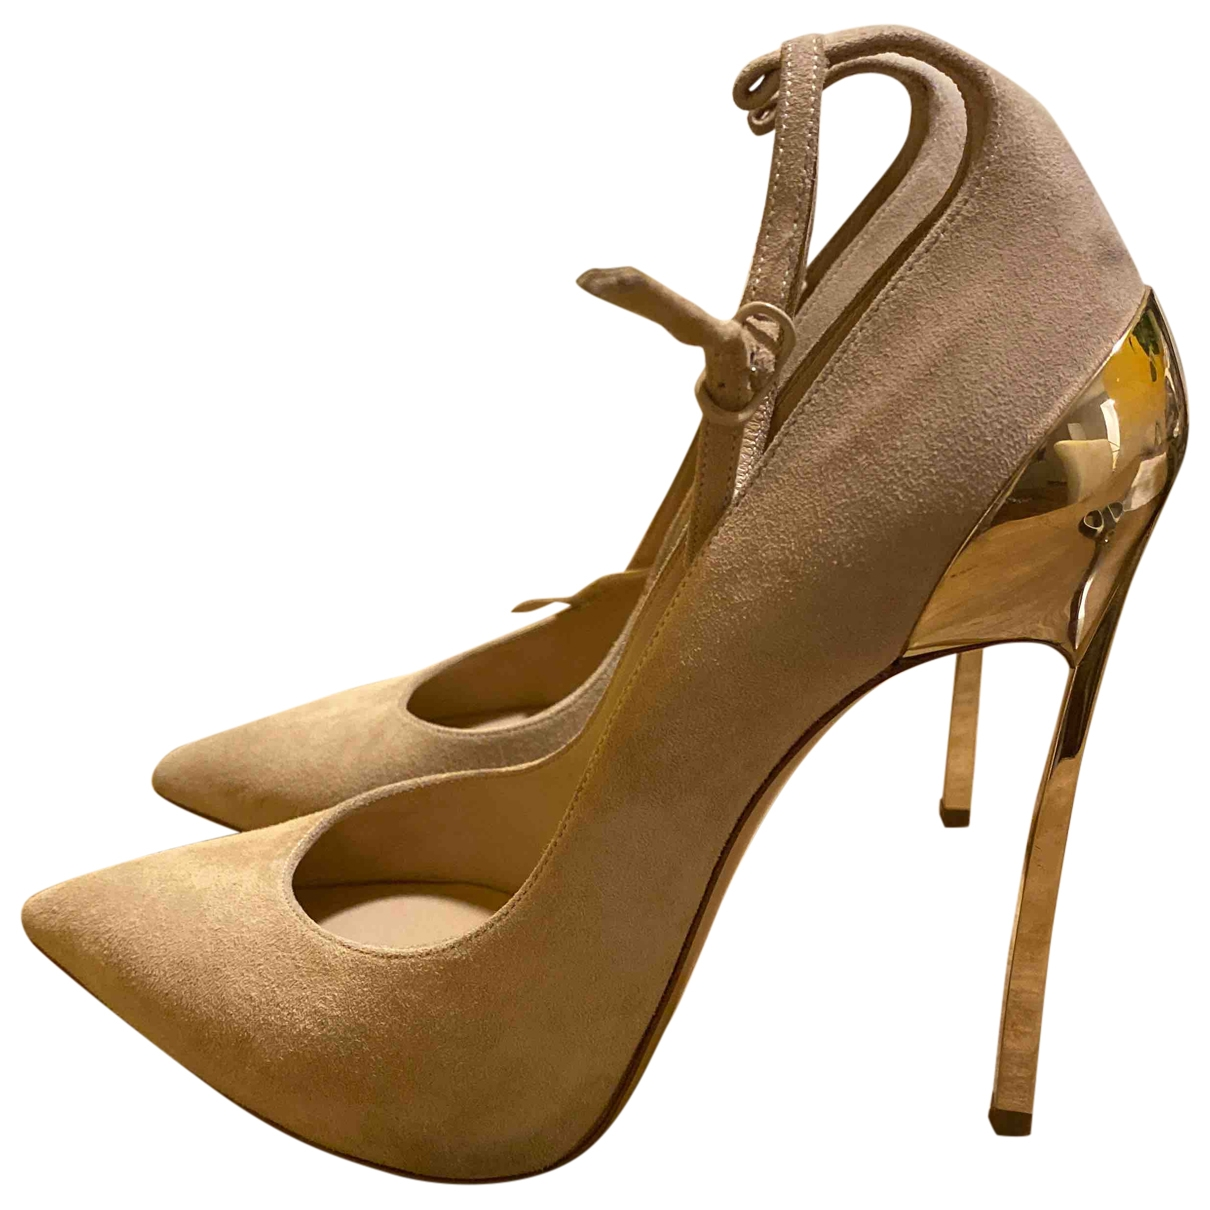 Casadei \N Pumps in  Beige Veloursleder